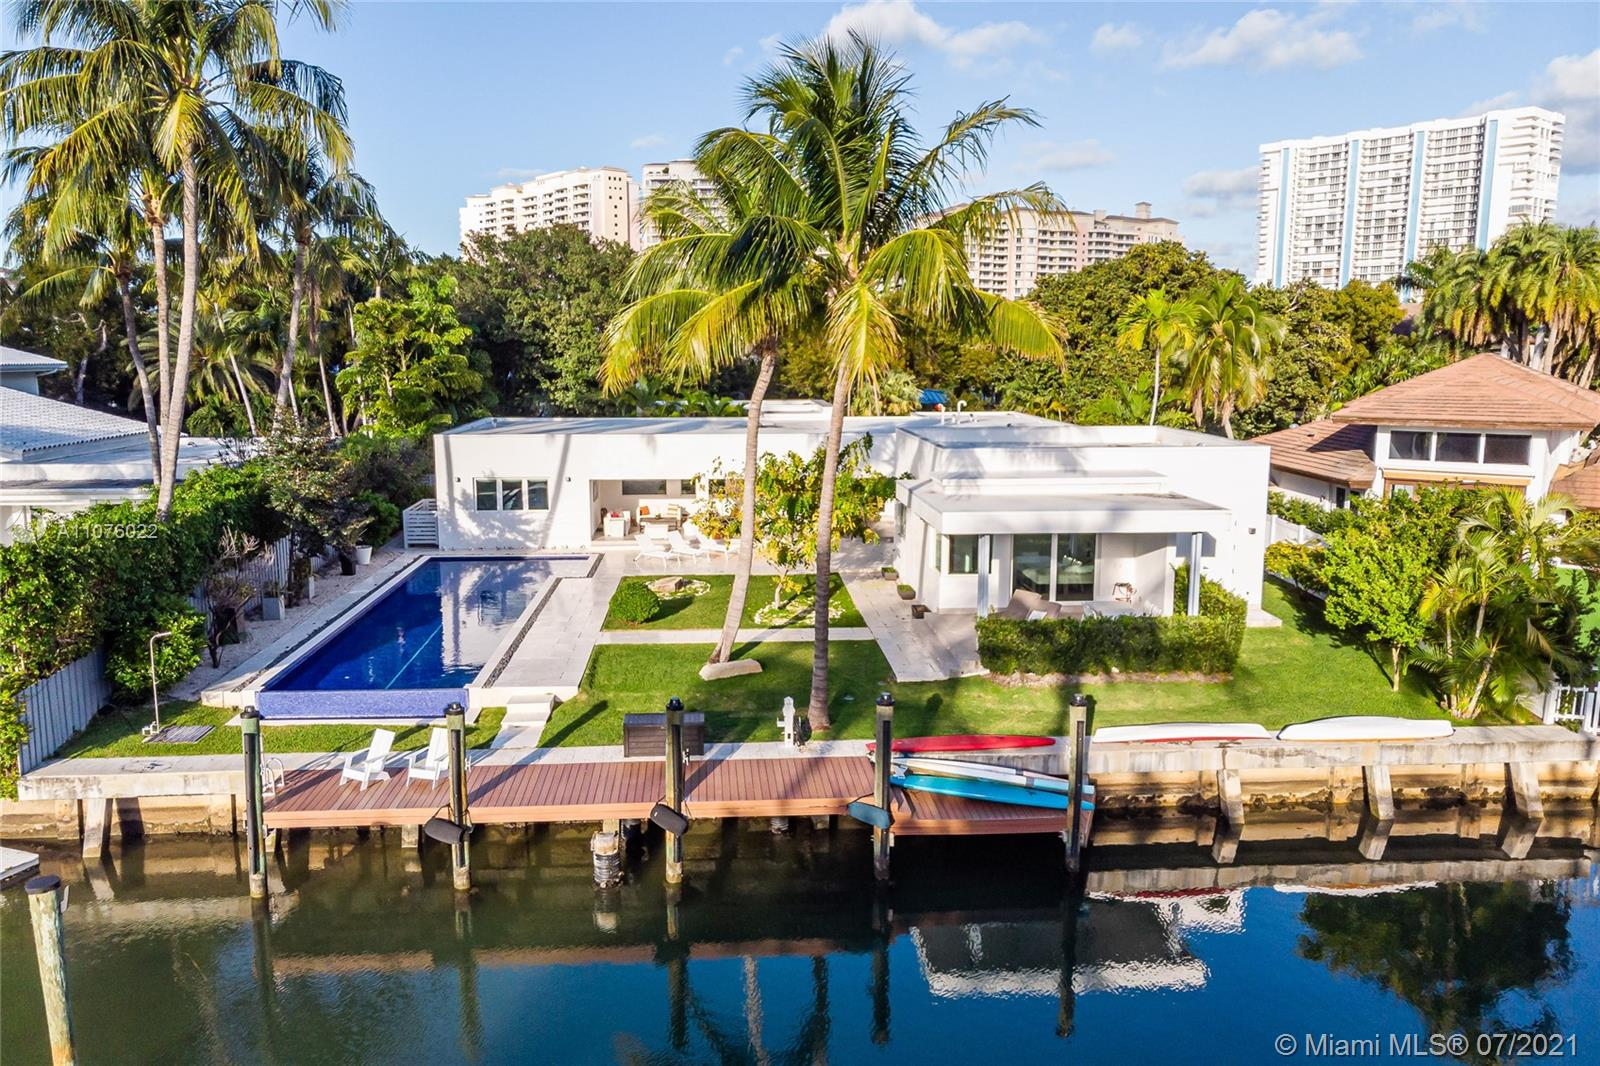 Boater's dream modern haven right on the water! Brand new 4BD/4.5BA one-story home located in one of Key Biscayne's most desirable waterways. House sits on 15,000SF Lot with lot size of 100x150 with a 120ft sea wall & direct ocean access. Enjoy breathtaking Sunset Skies from every room. Formal dining and living room open directly to covered patio area overlooking beautiful blue-tiled Lap Pool & the waterway. Kitchen features snack-bar counter, Miele & Viking Gas Appliances & wine coolers. High-Impact windows & window treatments throughout; black-outs in bedrooms. Two oversized & spacious Master Suites; all bedrooms en-suite. Large pantry area including laundry room. Beautiful & fine modern finishes. Perfect for entertaining & enjoying living life on the water